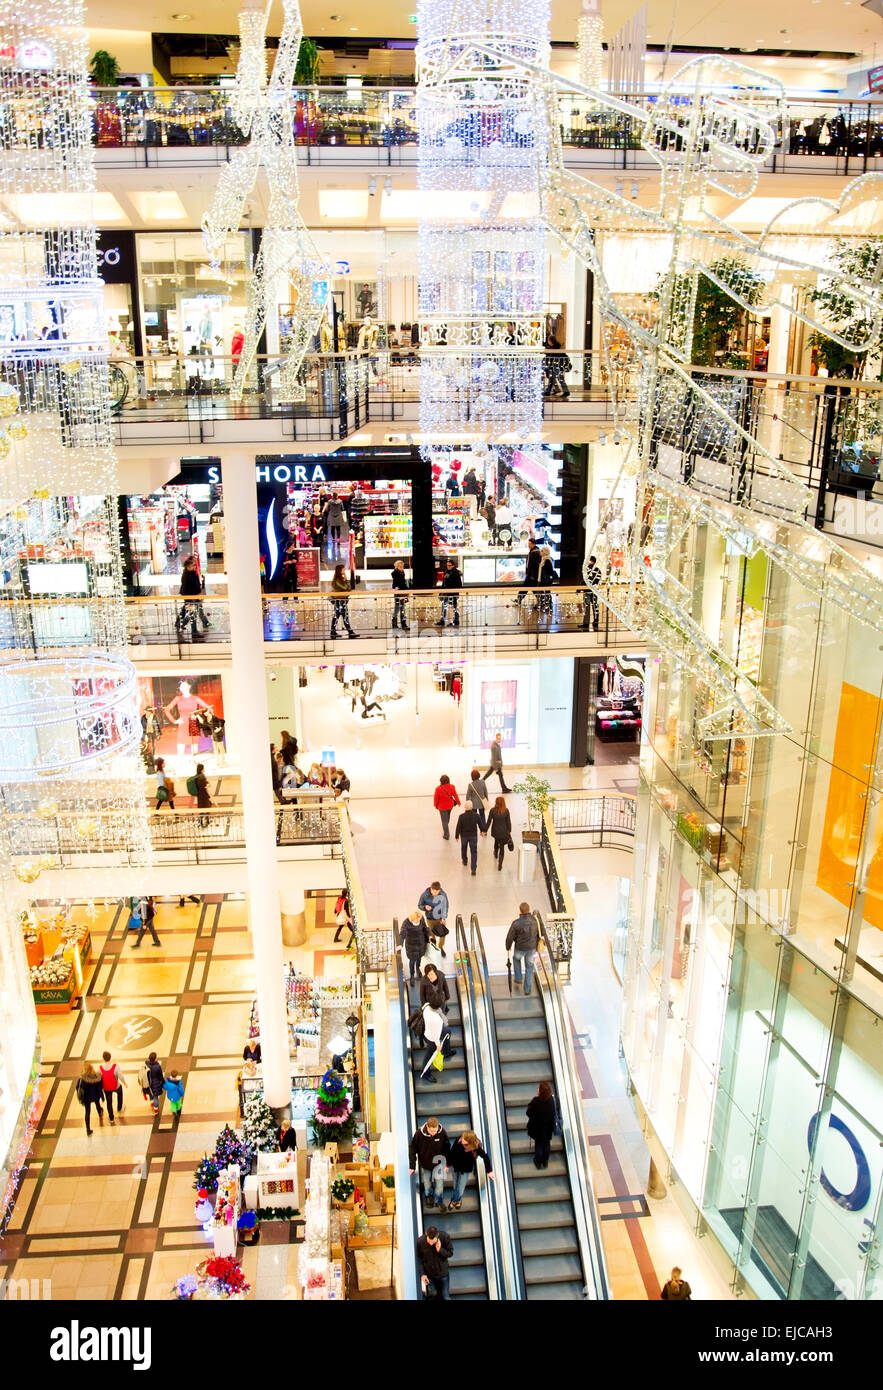 Holliday shopping mall - Stock Image